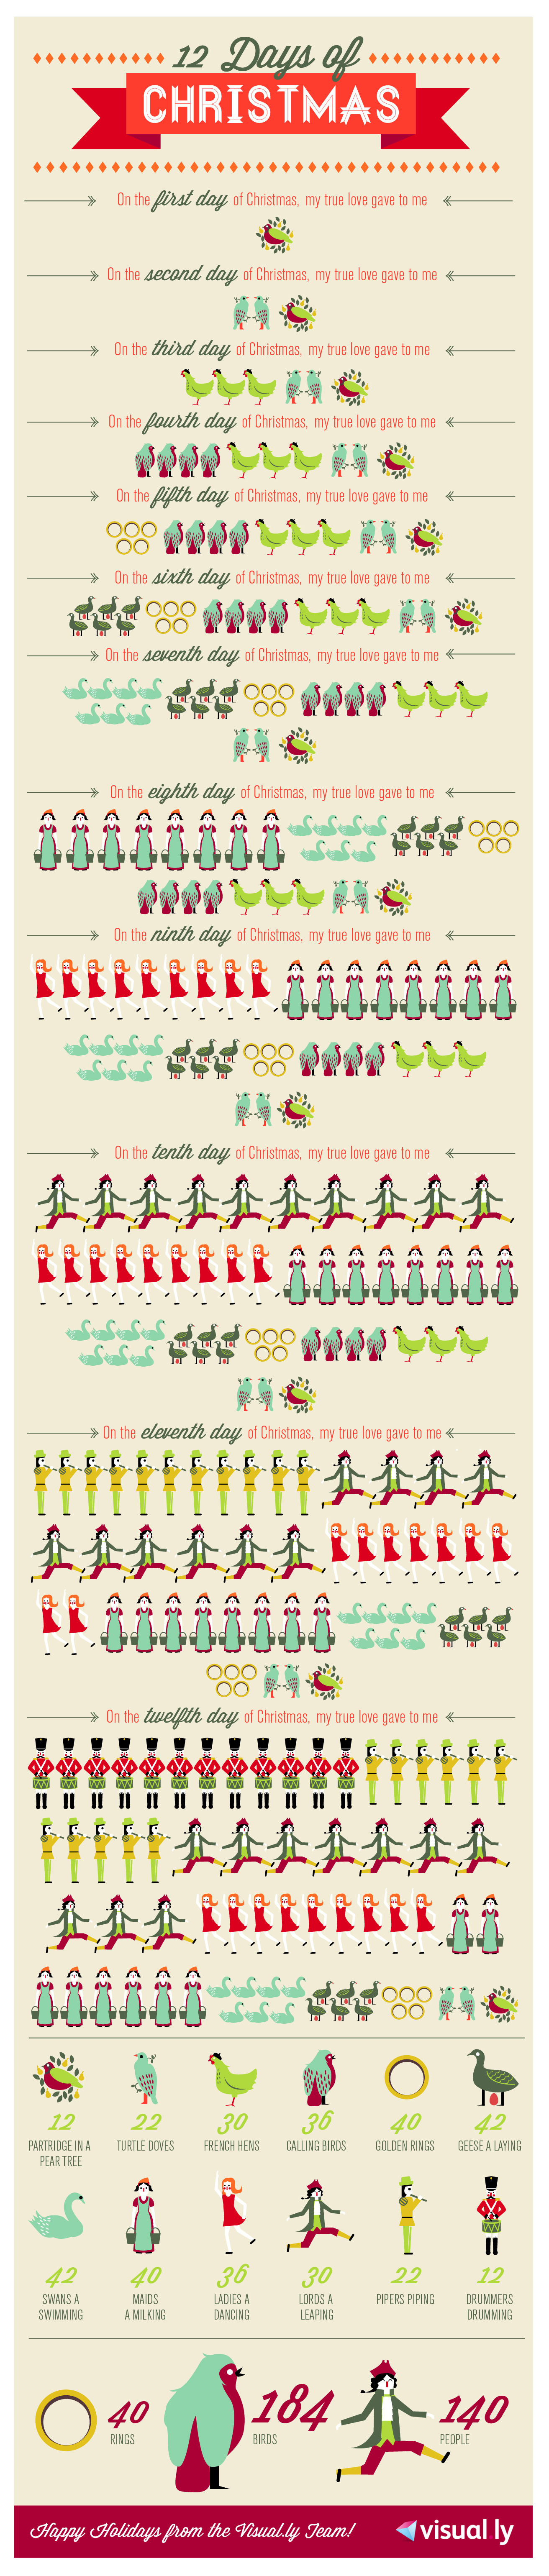 12 Days of Christmas in Infographic | Holiday Infographics ...